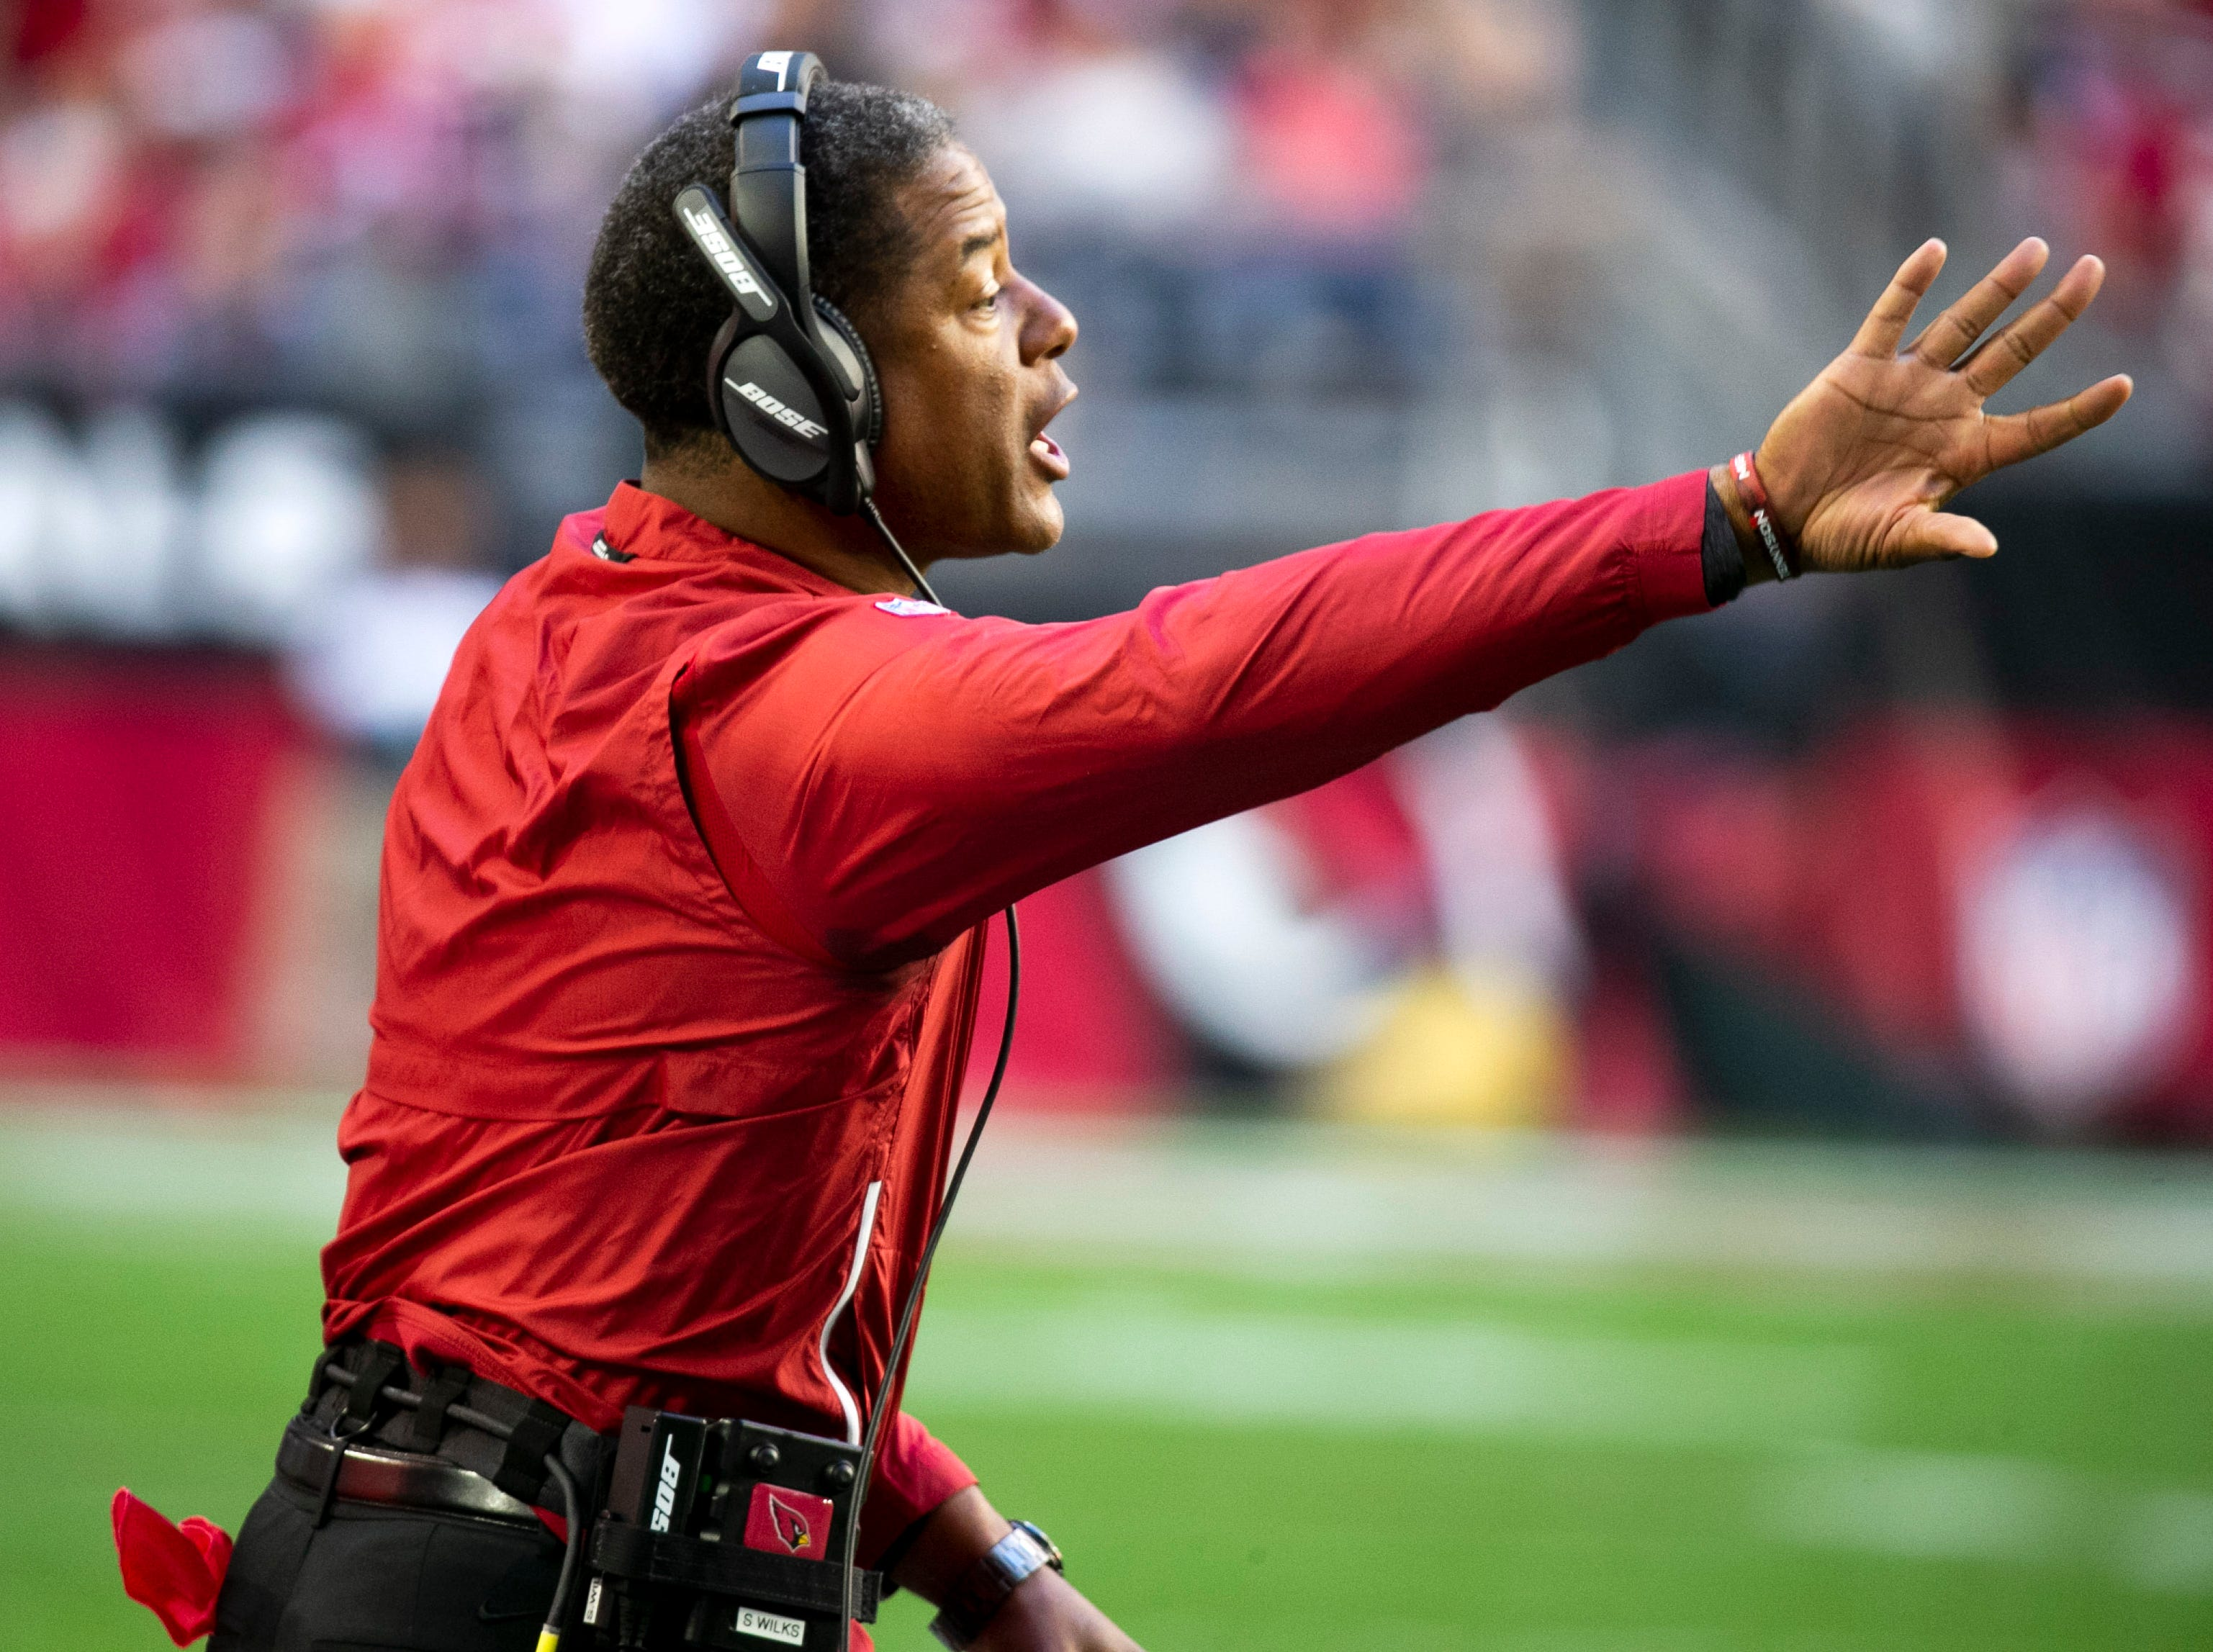 Cardinals head coach Steve Wilks during the second quarter of the NFL game against the Rams at State Farm Stadium in Glendale on Sunday, December 23, 2018.